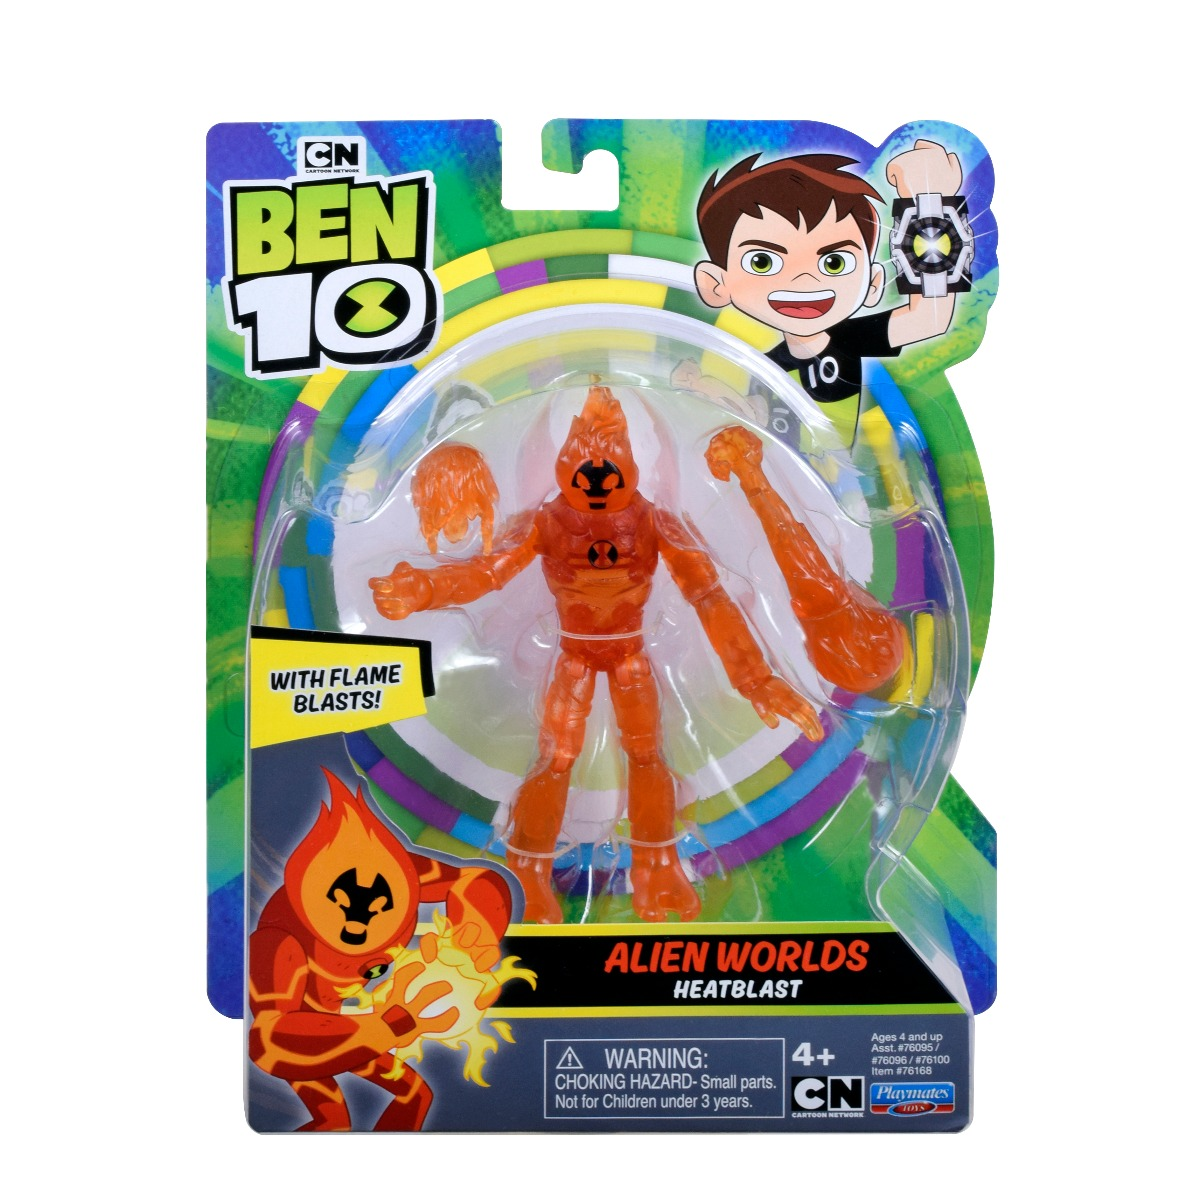 Figurina Ben 10, Alien Worlds, Heatblast, 12 cm, 76168